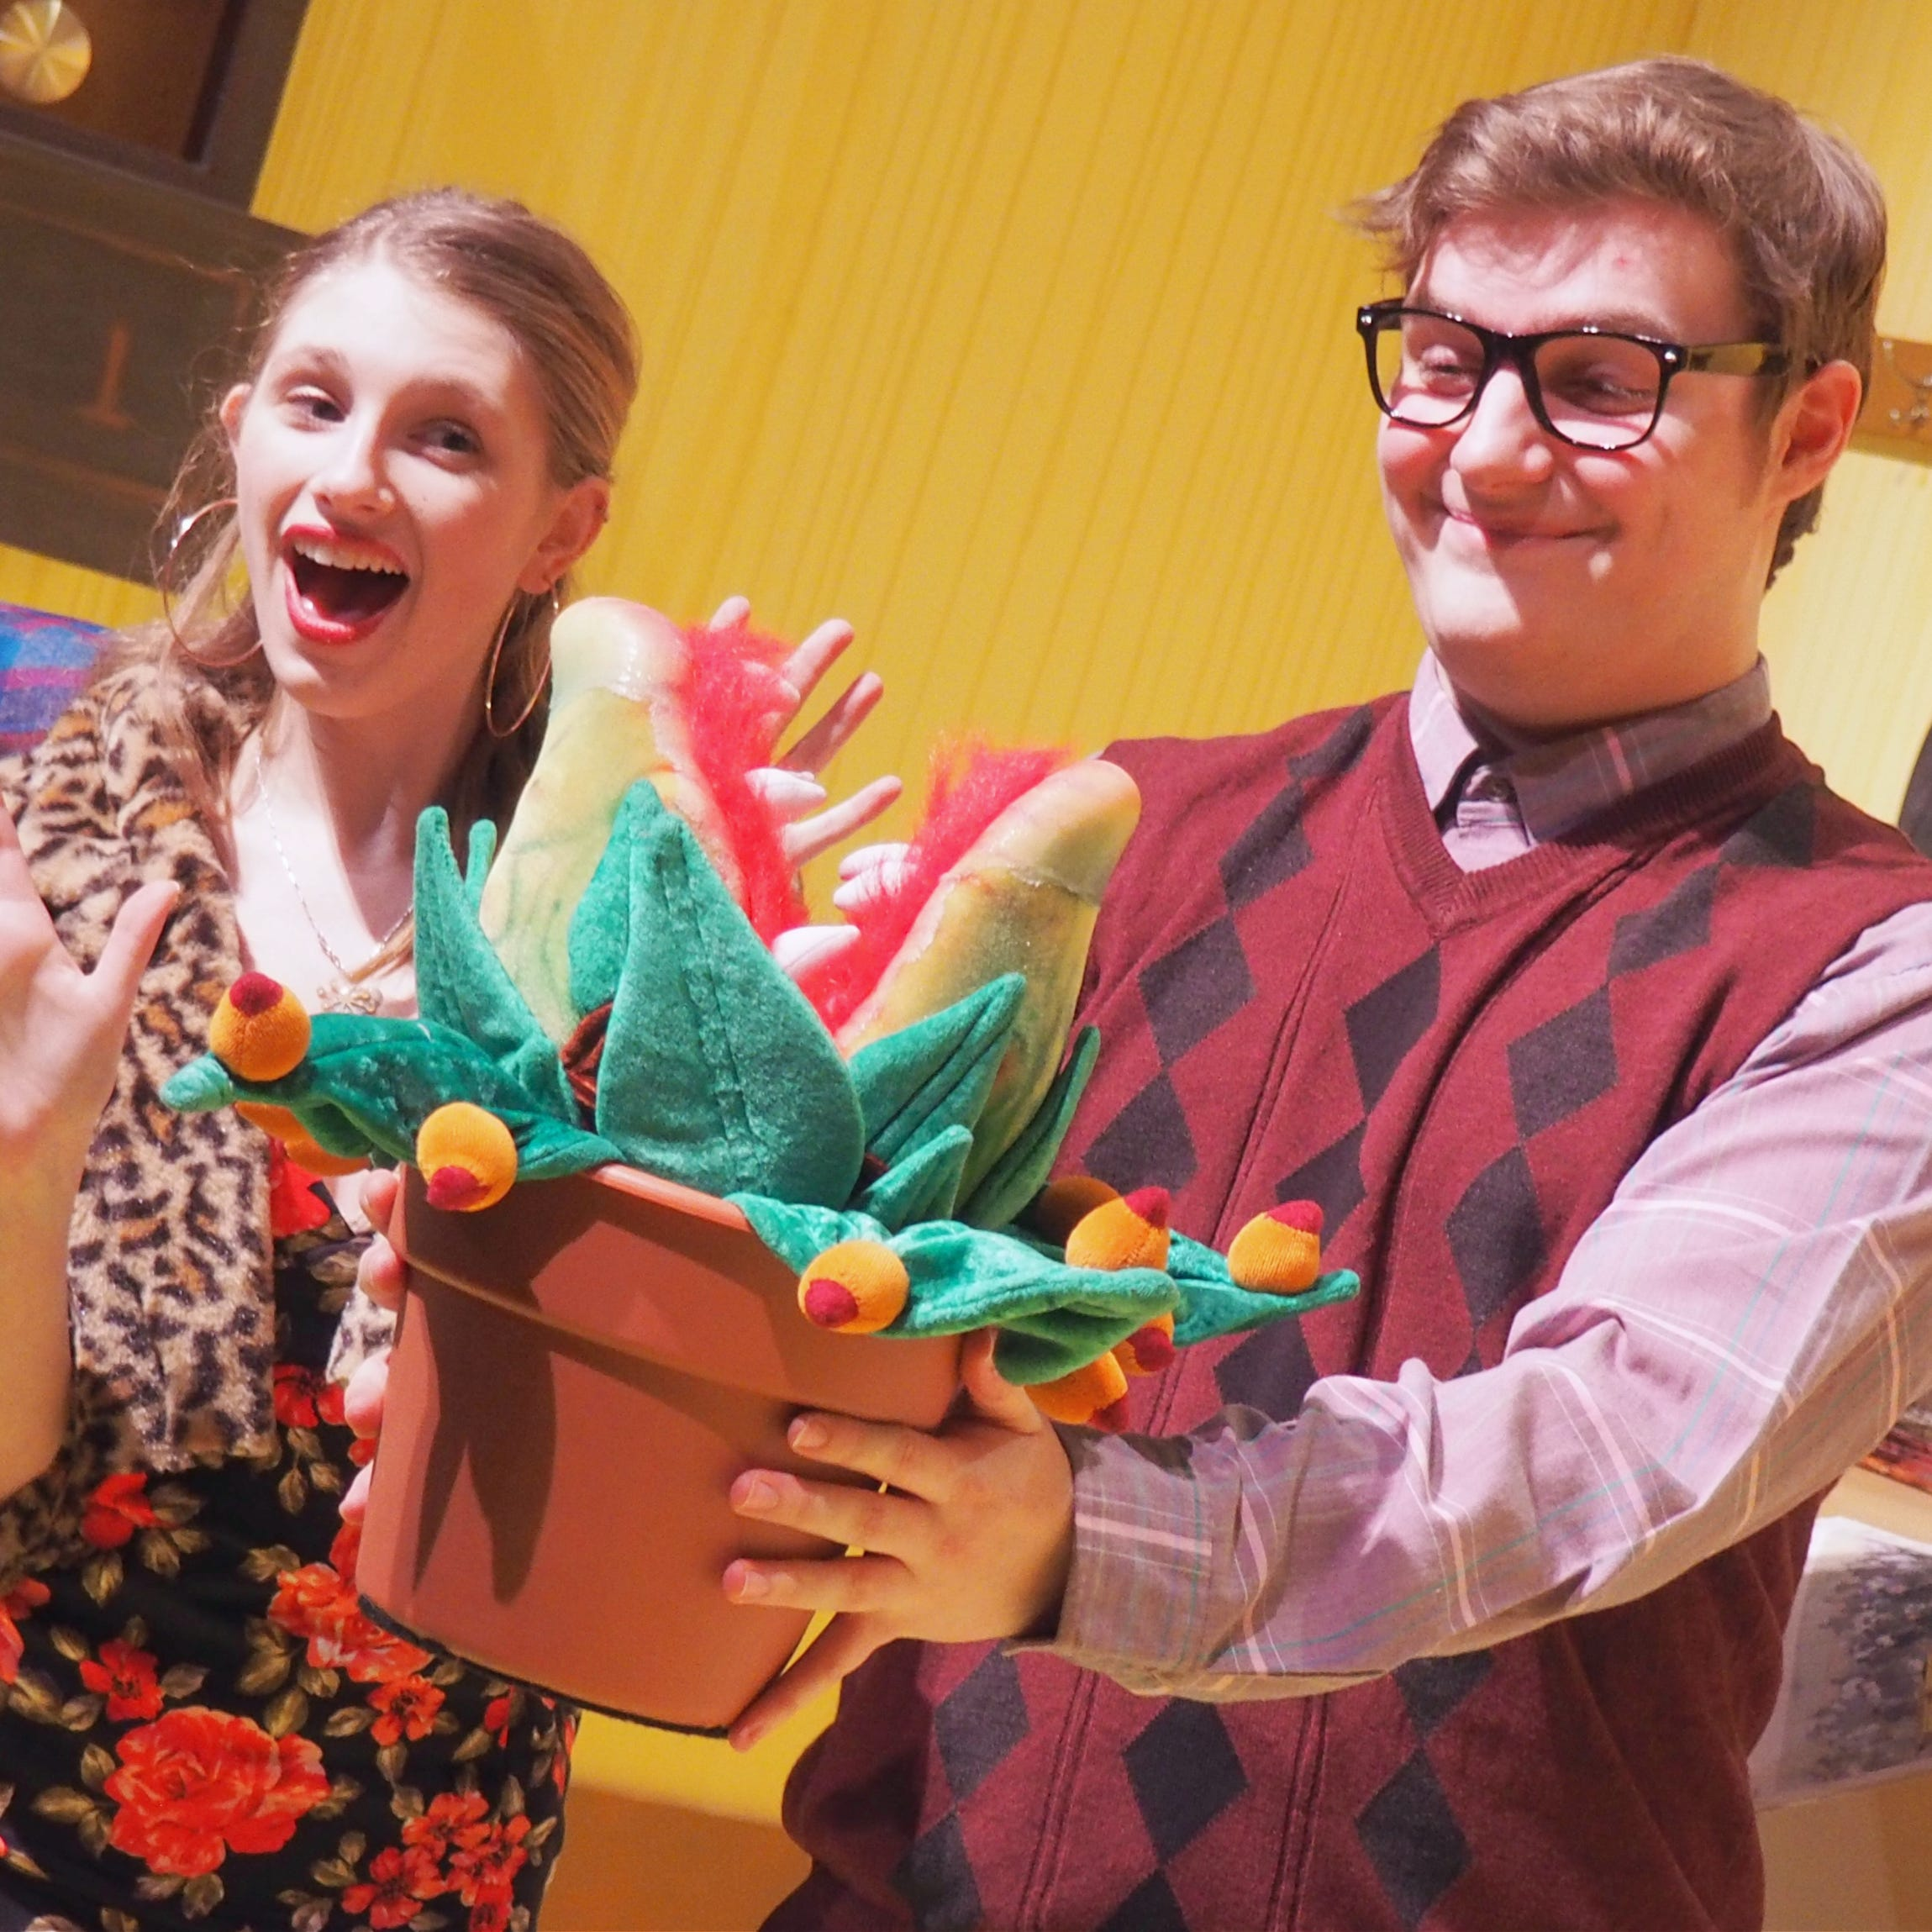 'Feed me, Seymour': Fond du Lac High School to stage 'Little Shop of Horrors'